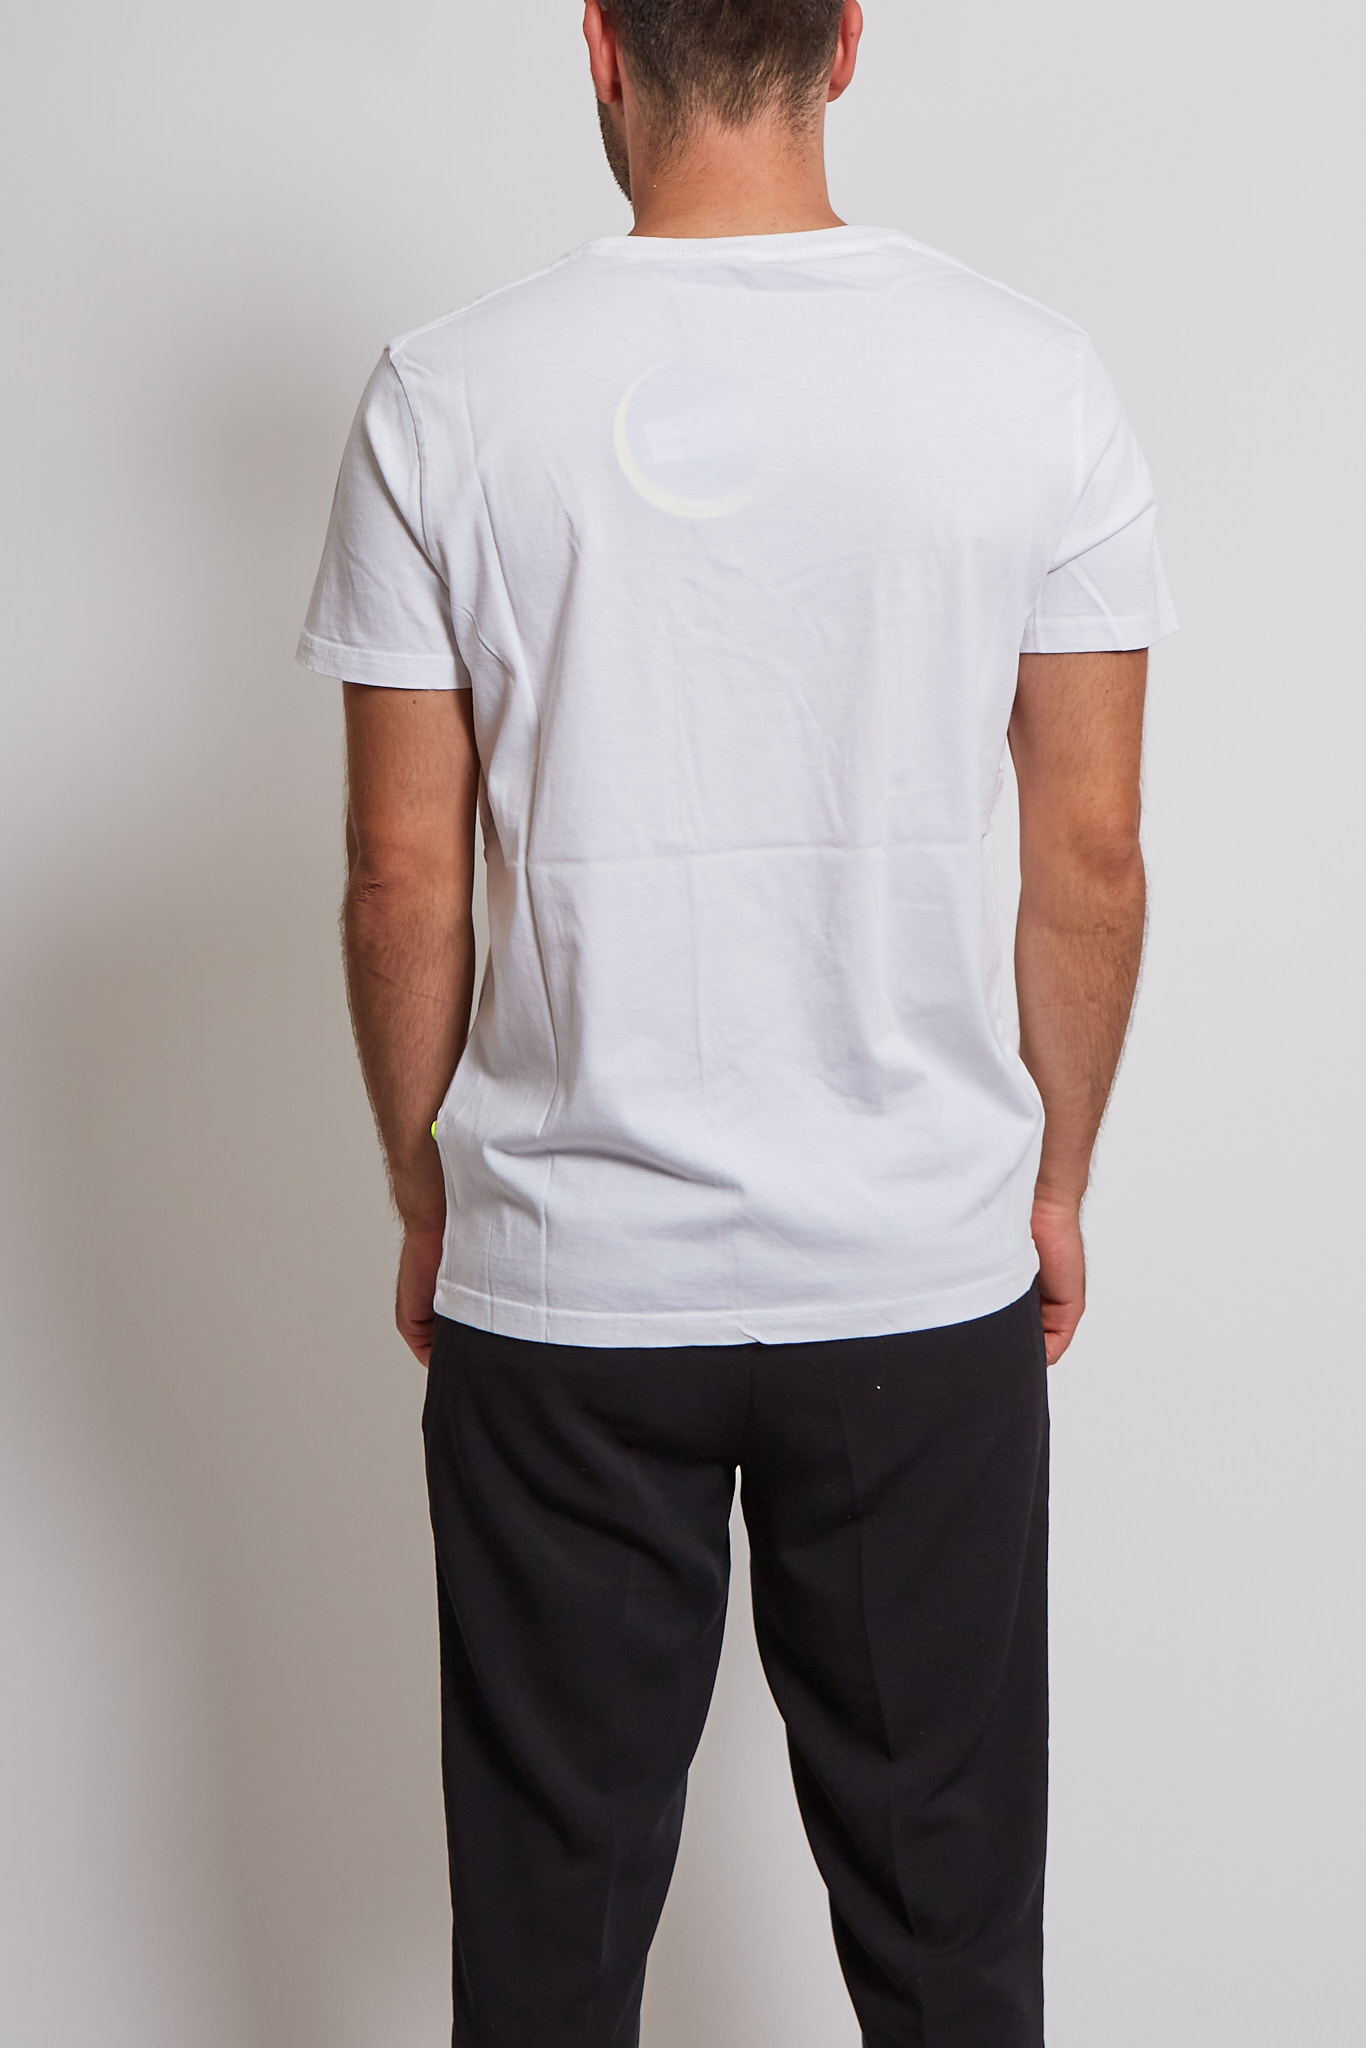 T-shirt Shockly SHOCKLY | T-shirt | 213T140WHITE